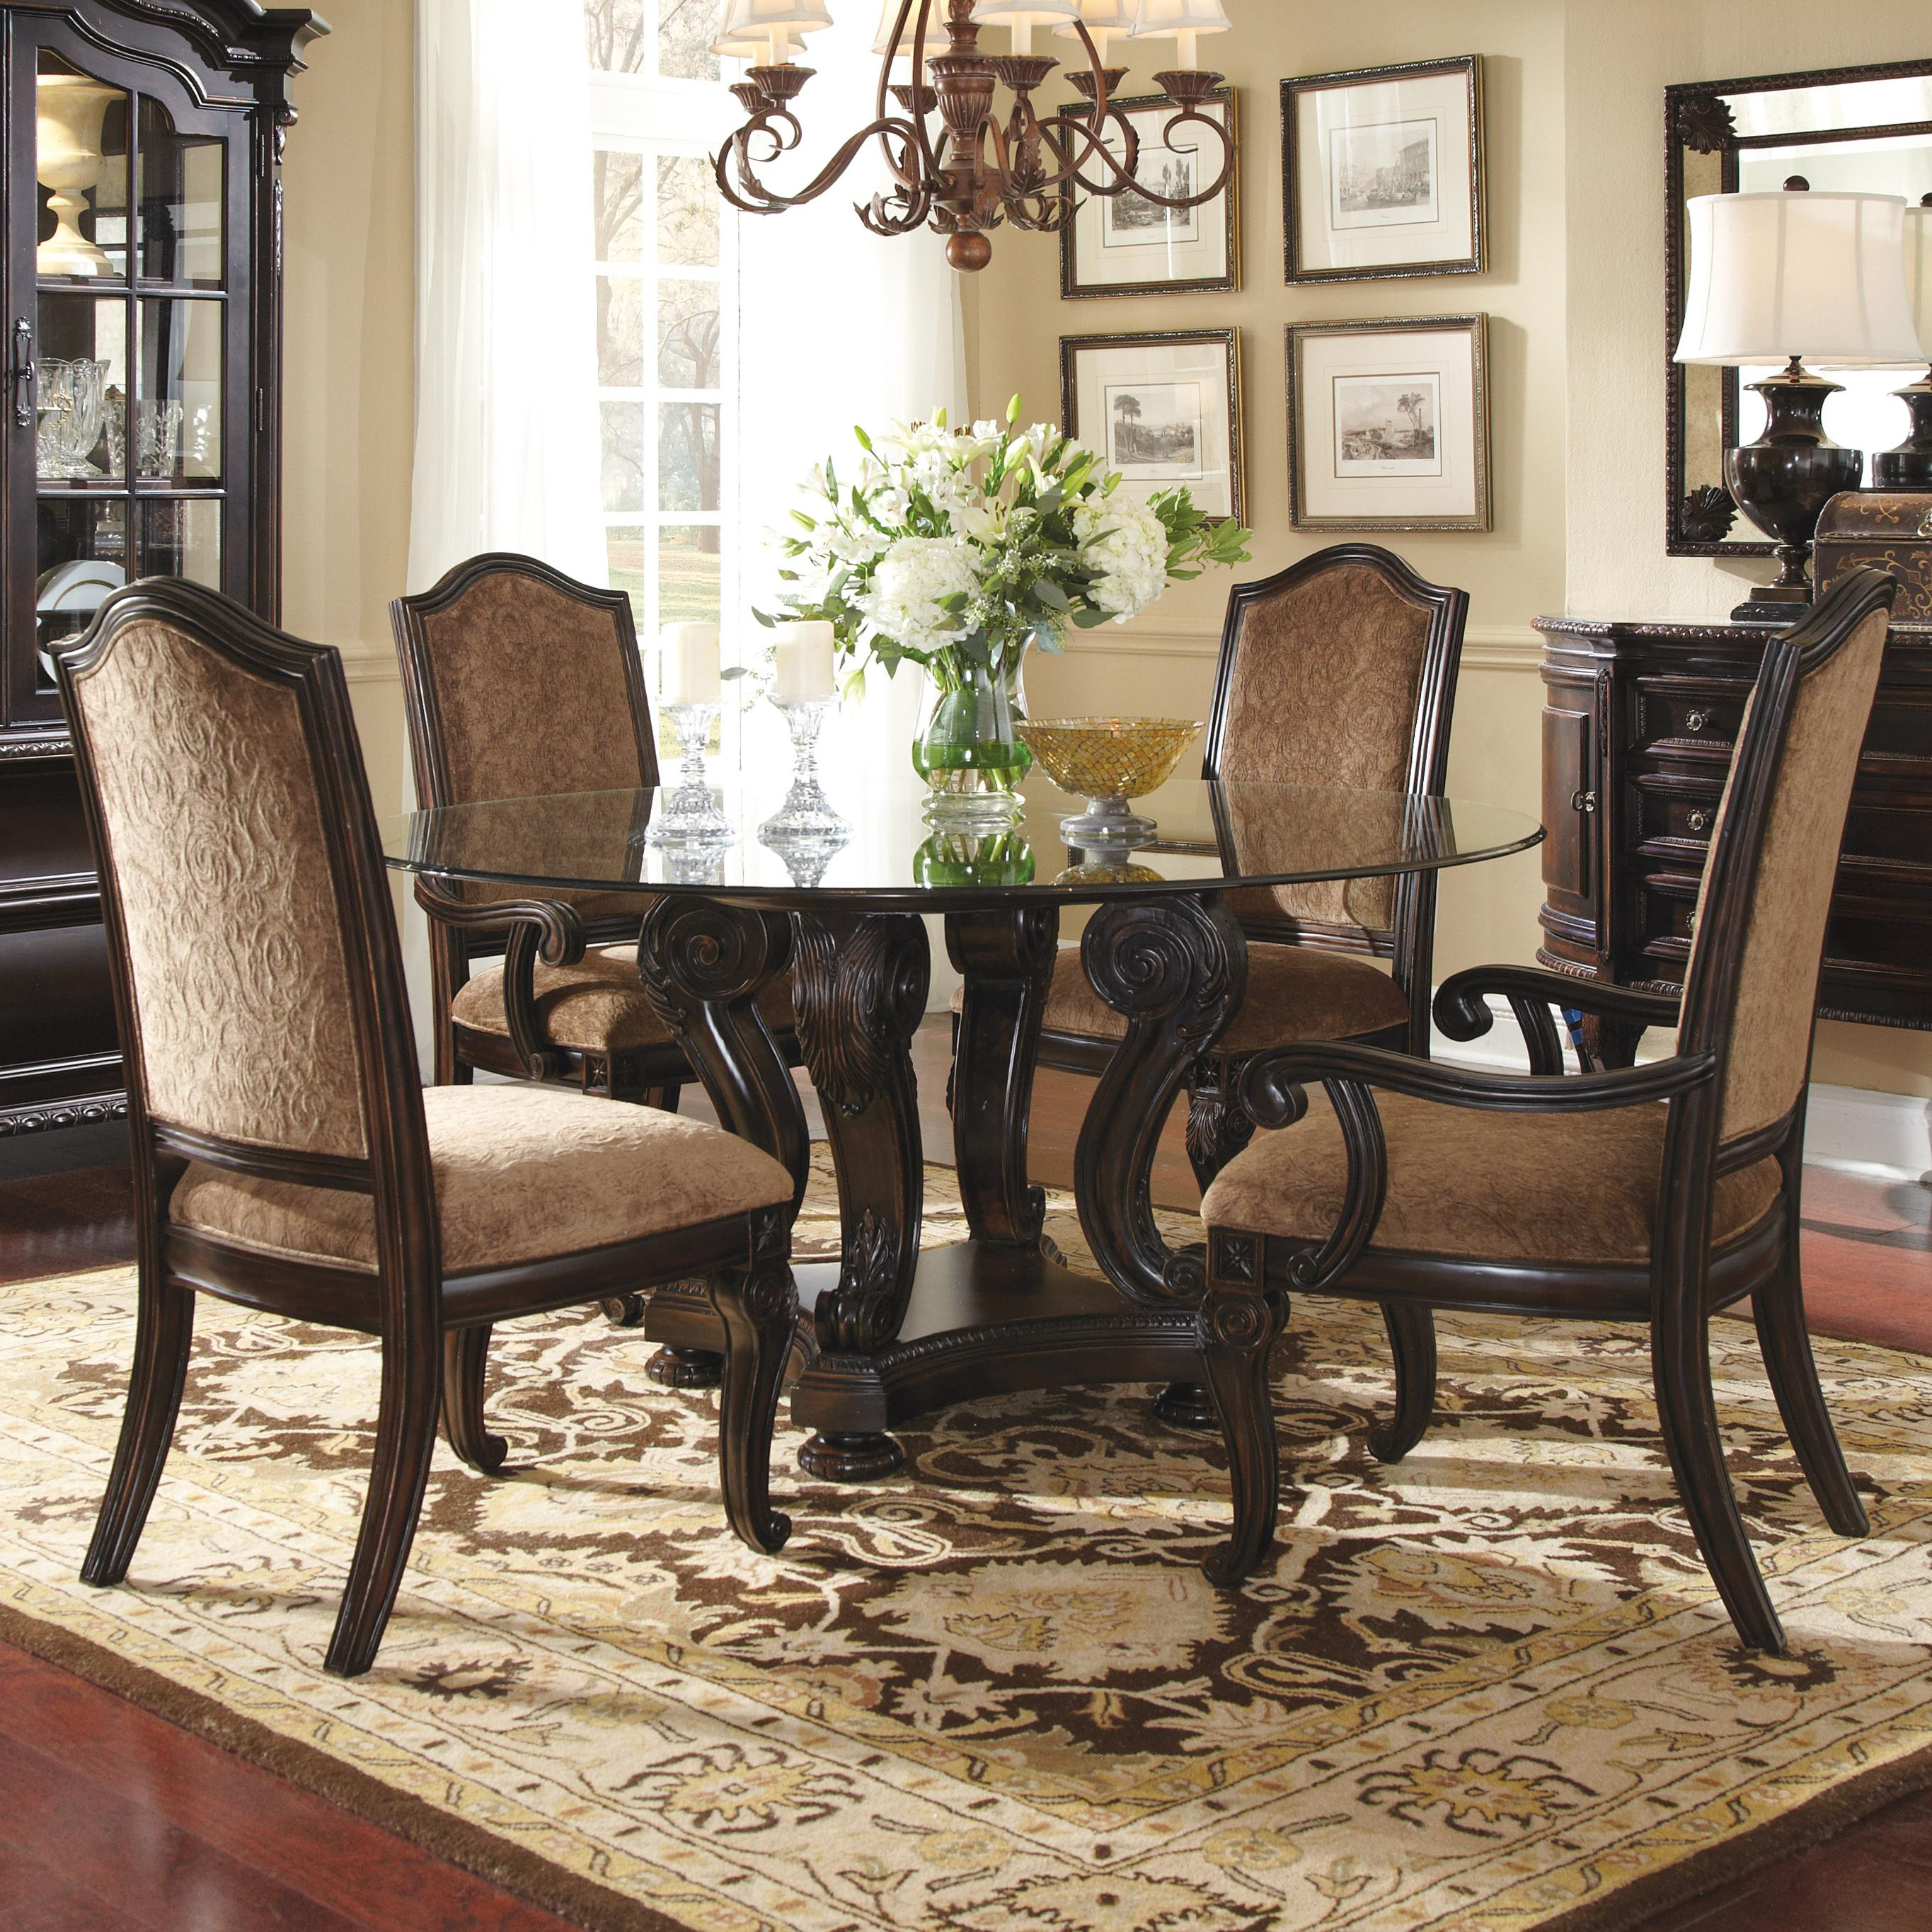 Dining Room Sets: Adorable Round Dining Room Table Sets For 4